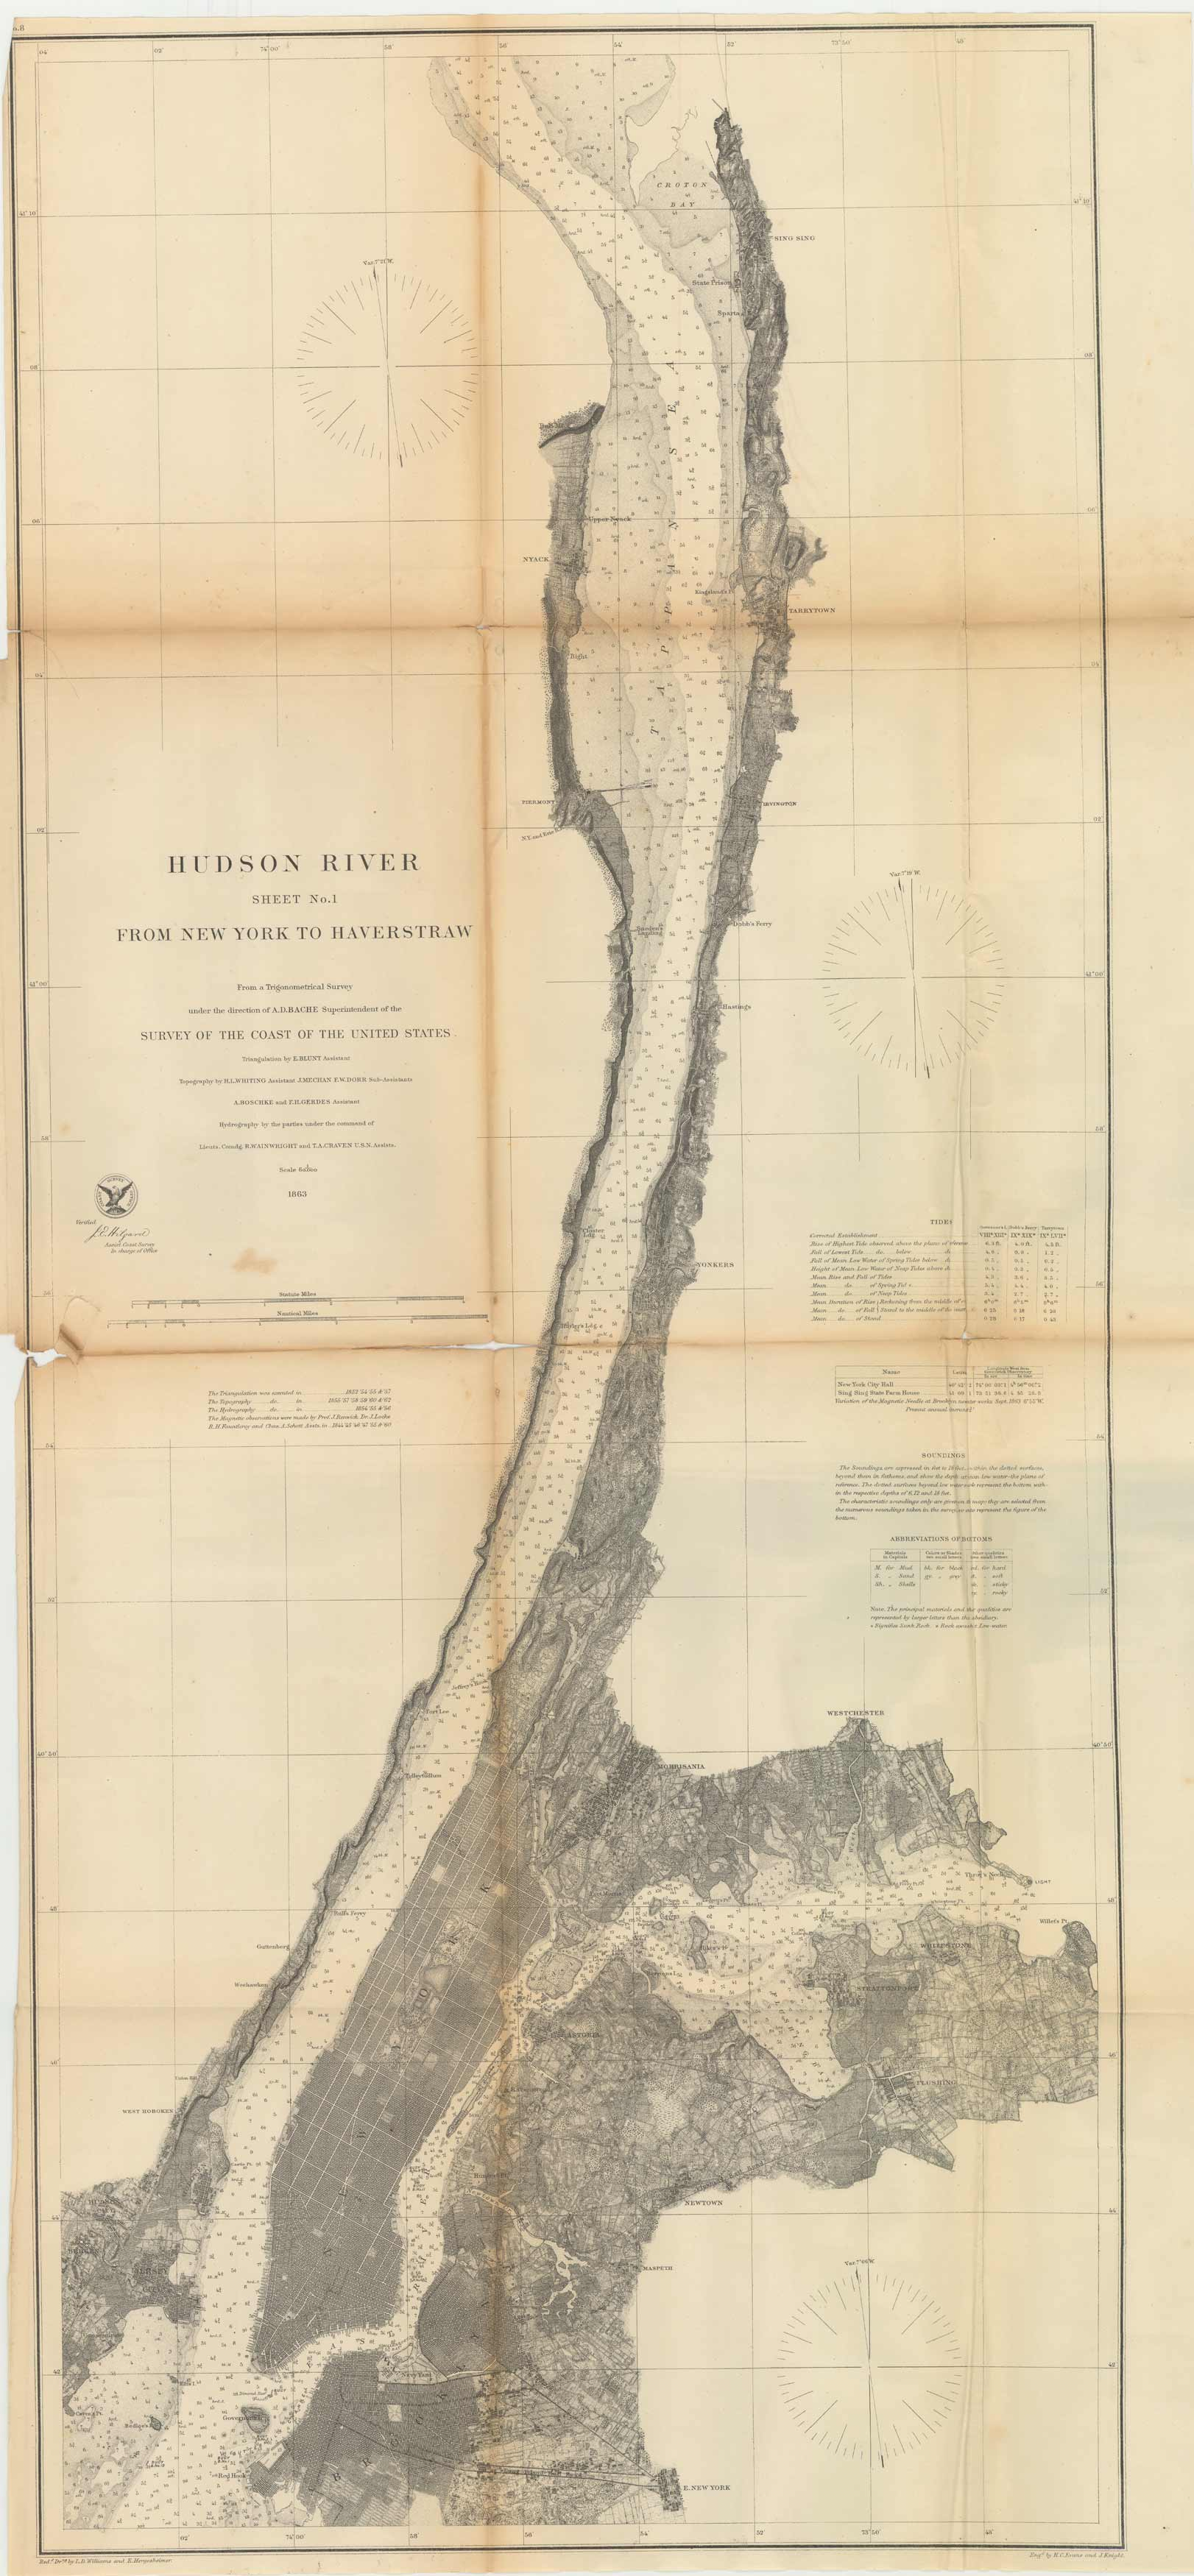 Hudson River Sheet No. 1 from New York to Haverstraw